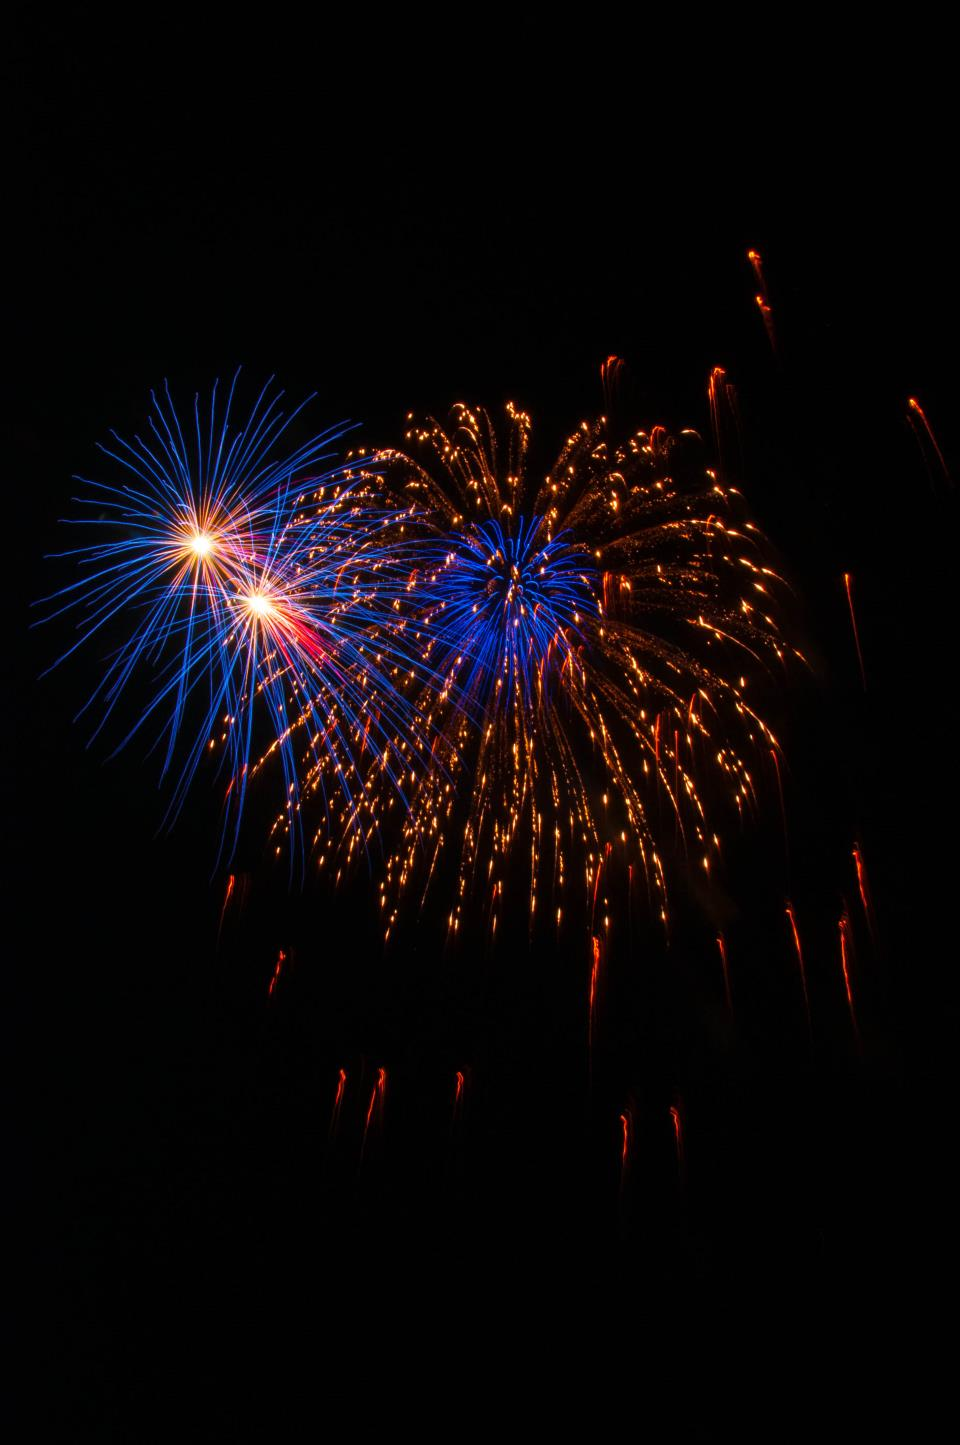 Blue, Red, and Gold fireworks